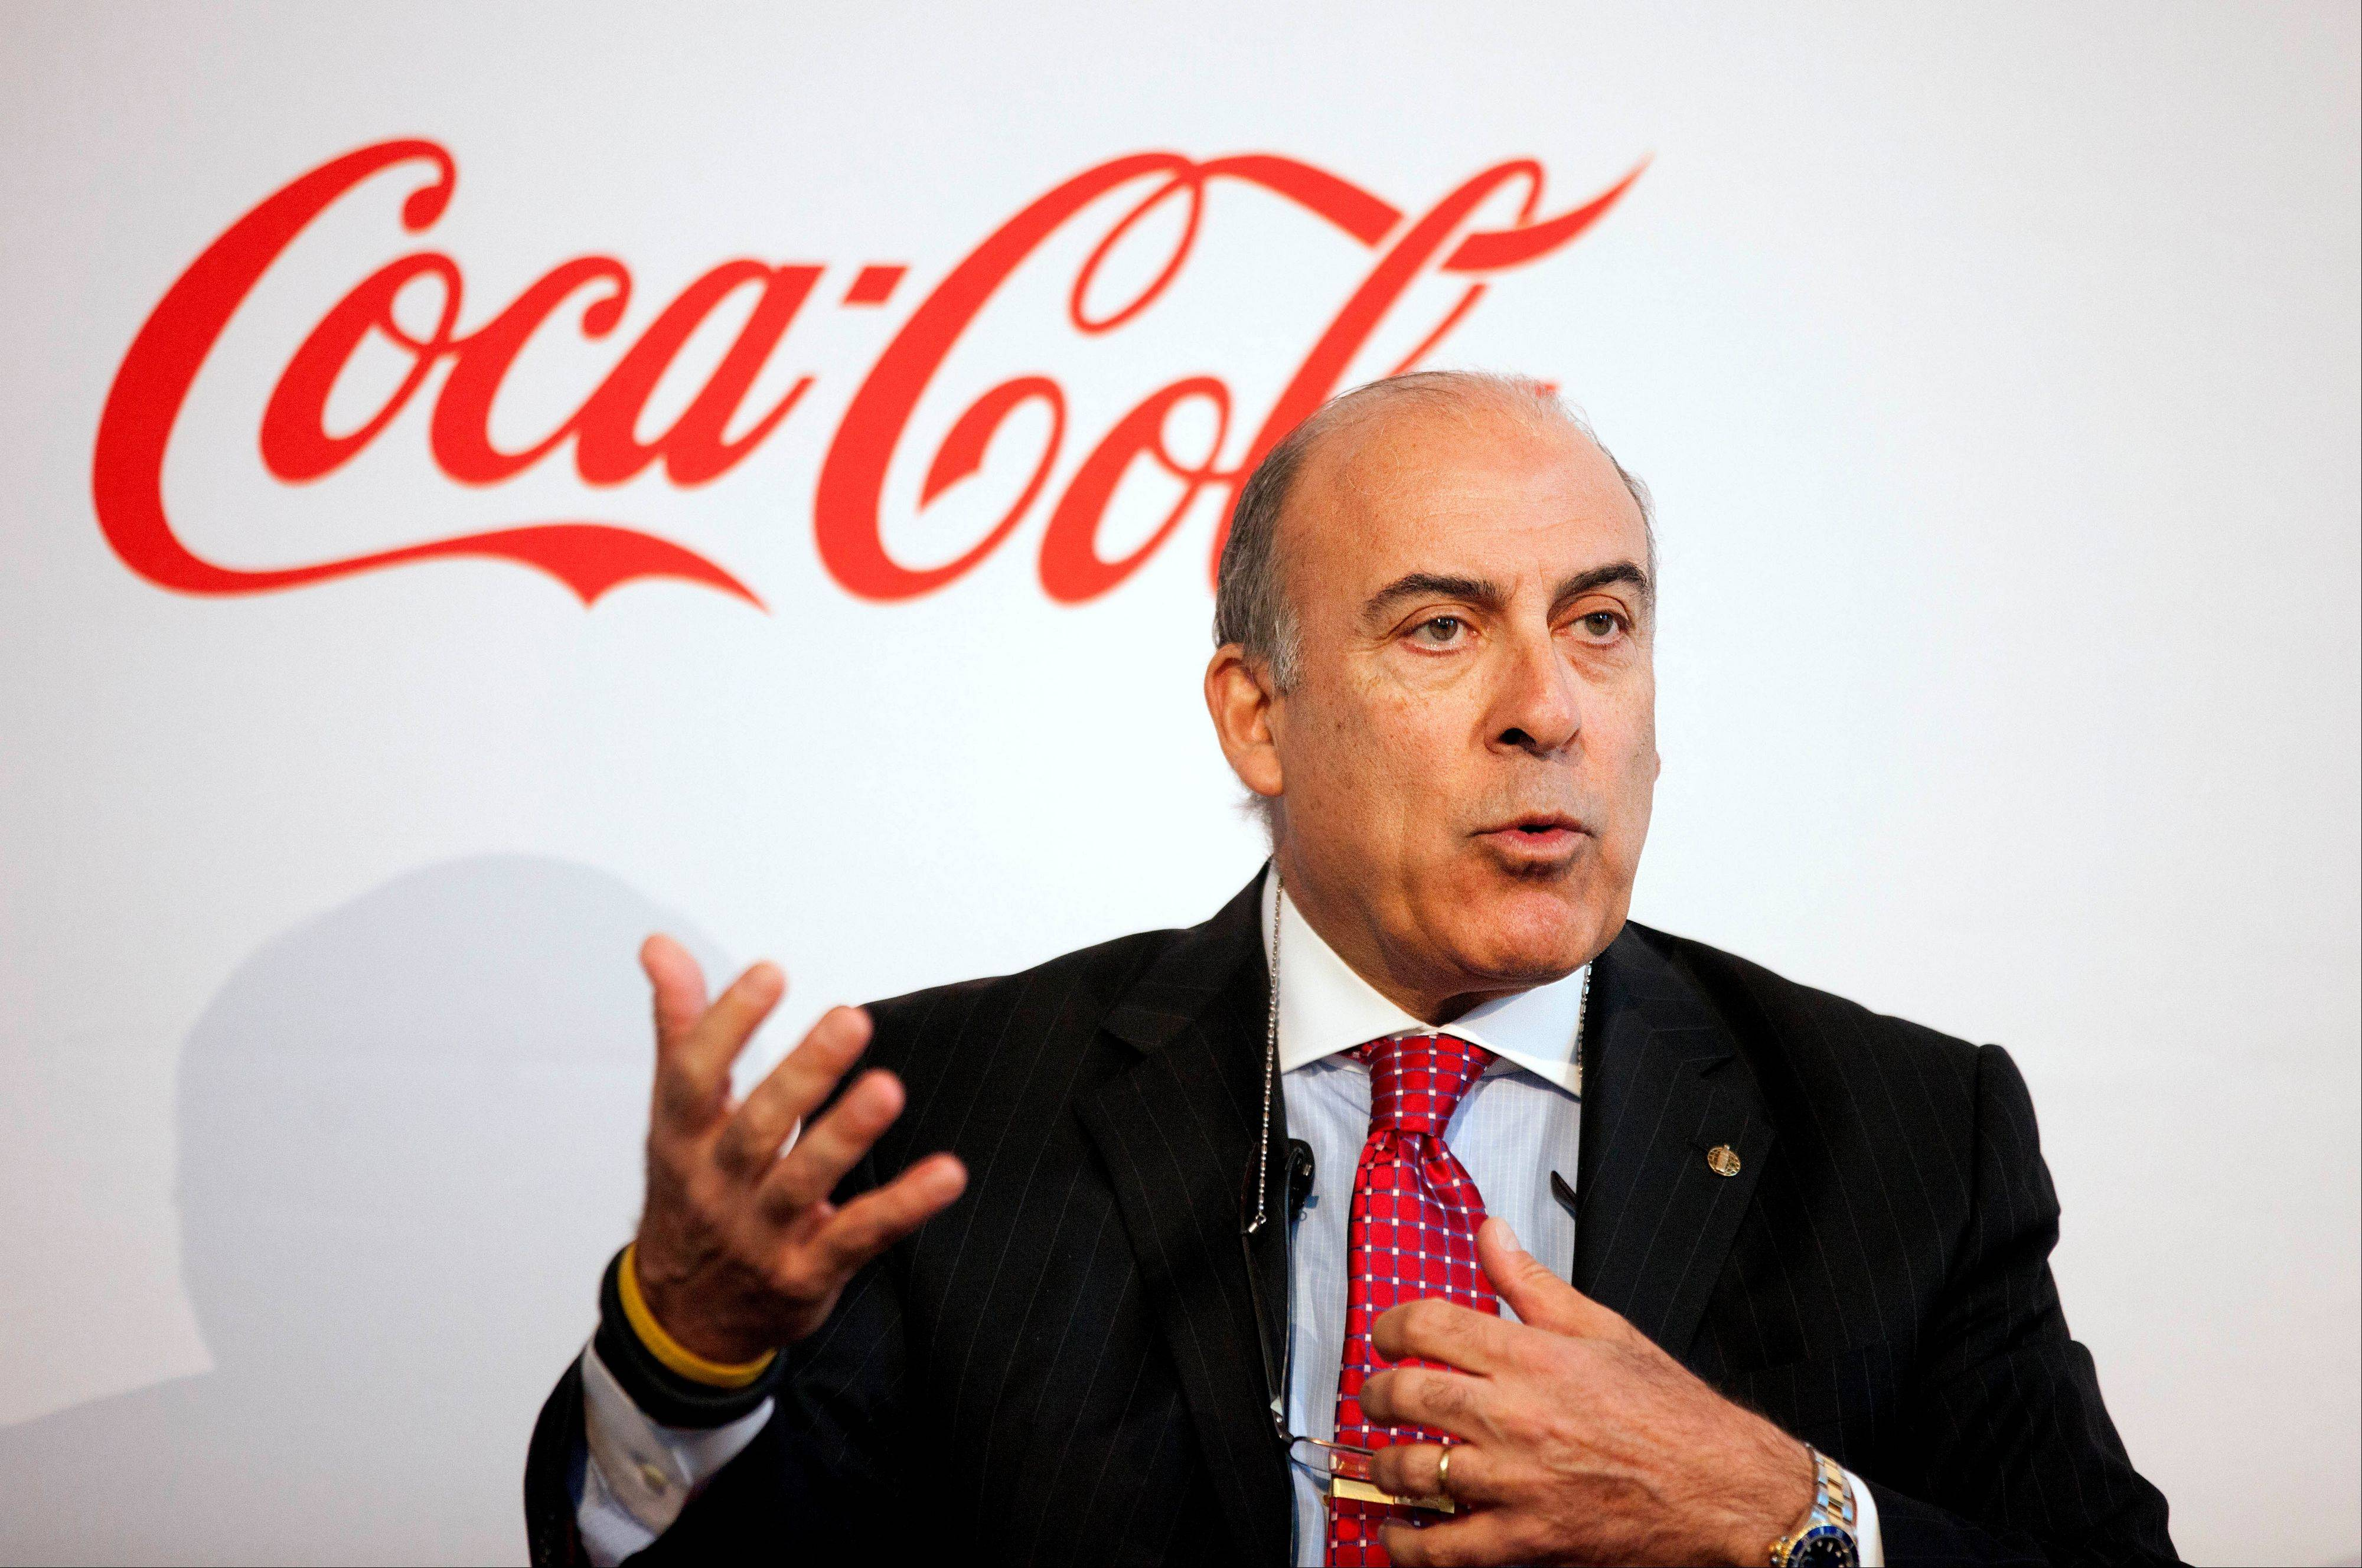 Coca-Cola CEO Muhtar Kent announces it will work to make lower-calorie drinks and clear nutrition information more widely available around the world Wednesday. The announcement from Coca-Cola comes as packaged food companies across the industry look for growth in developing markets, where middle-class populations are growing rapidly.